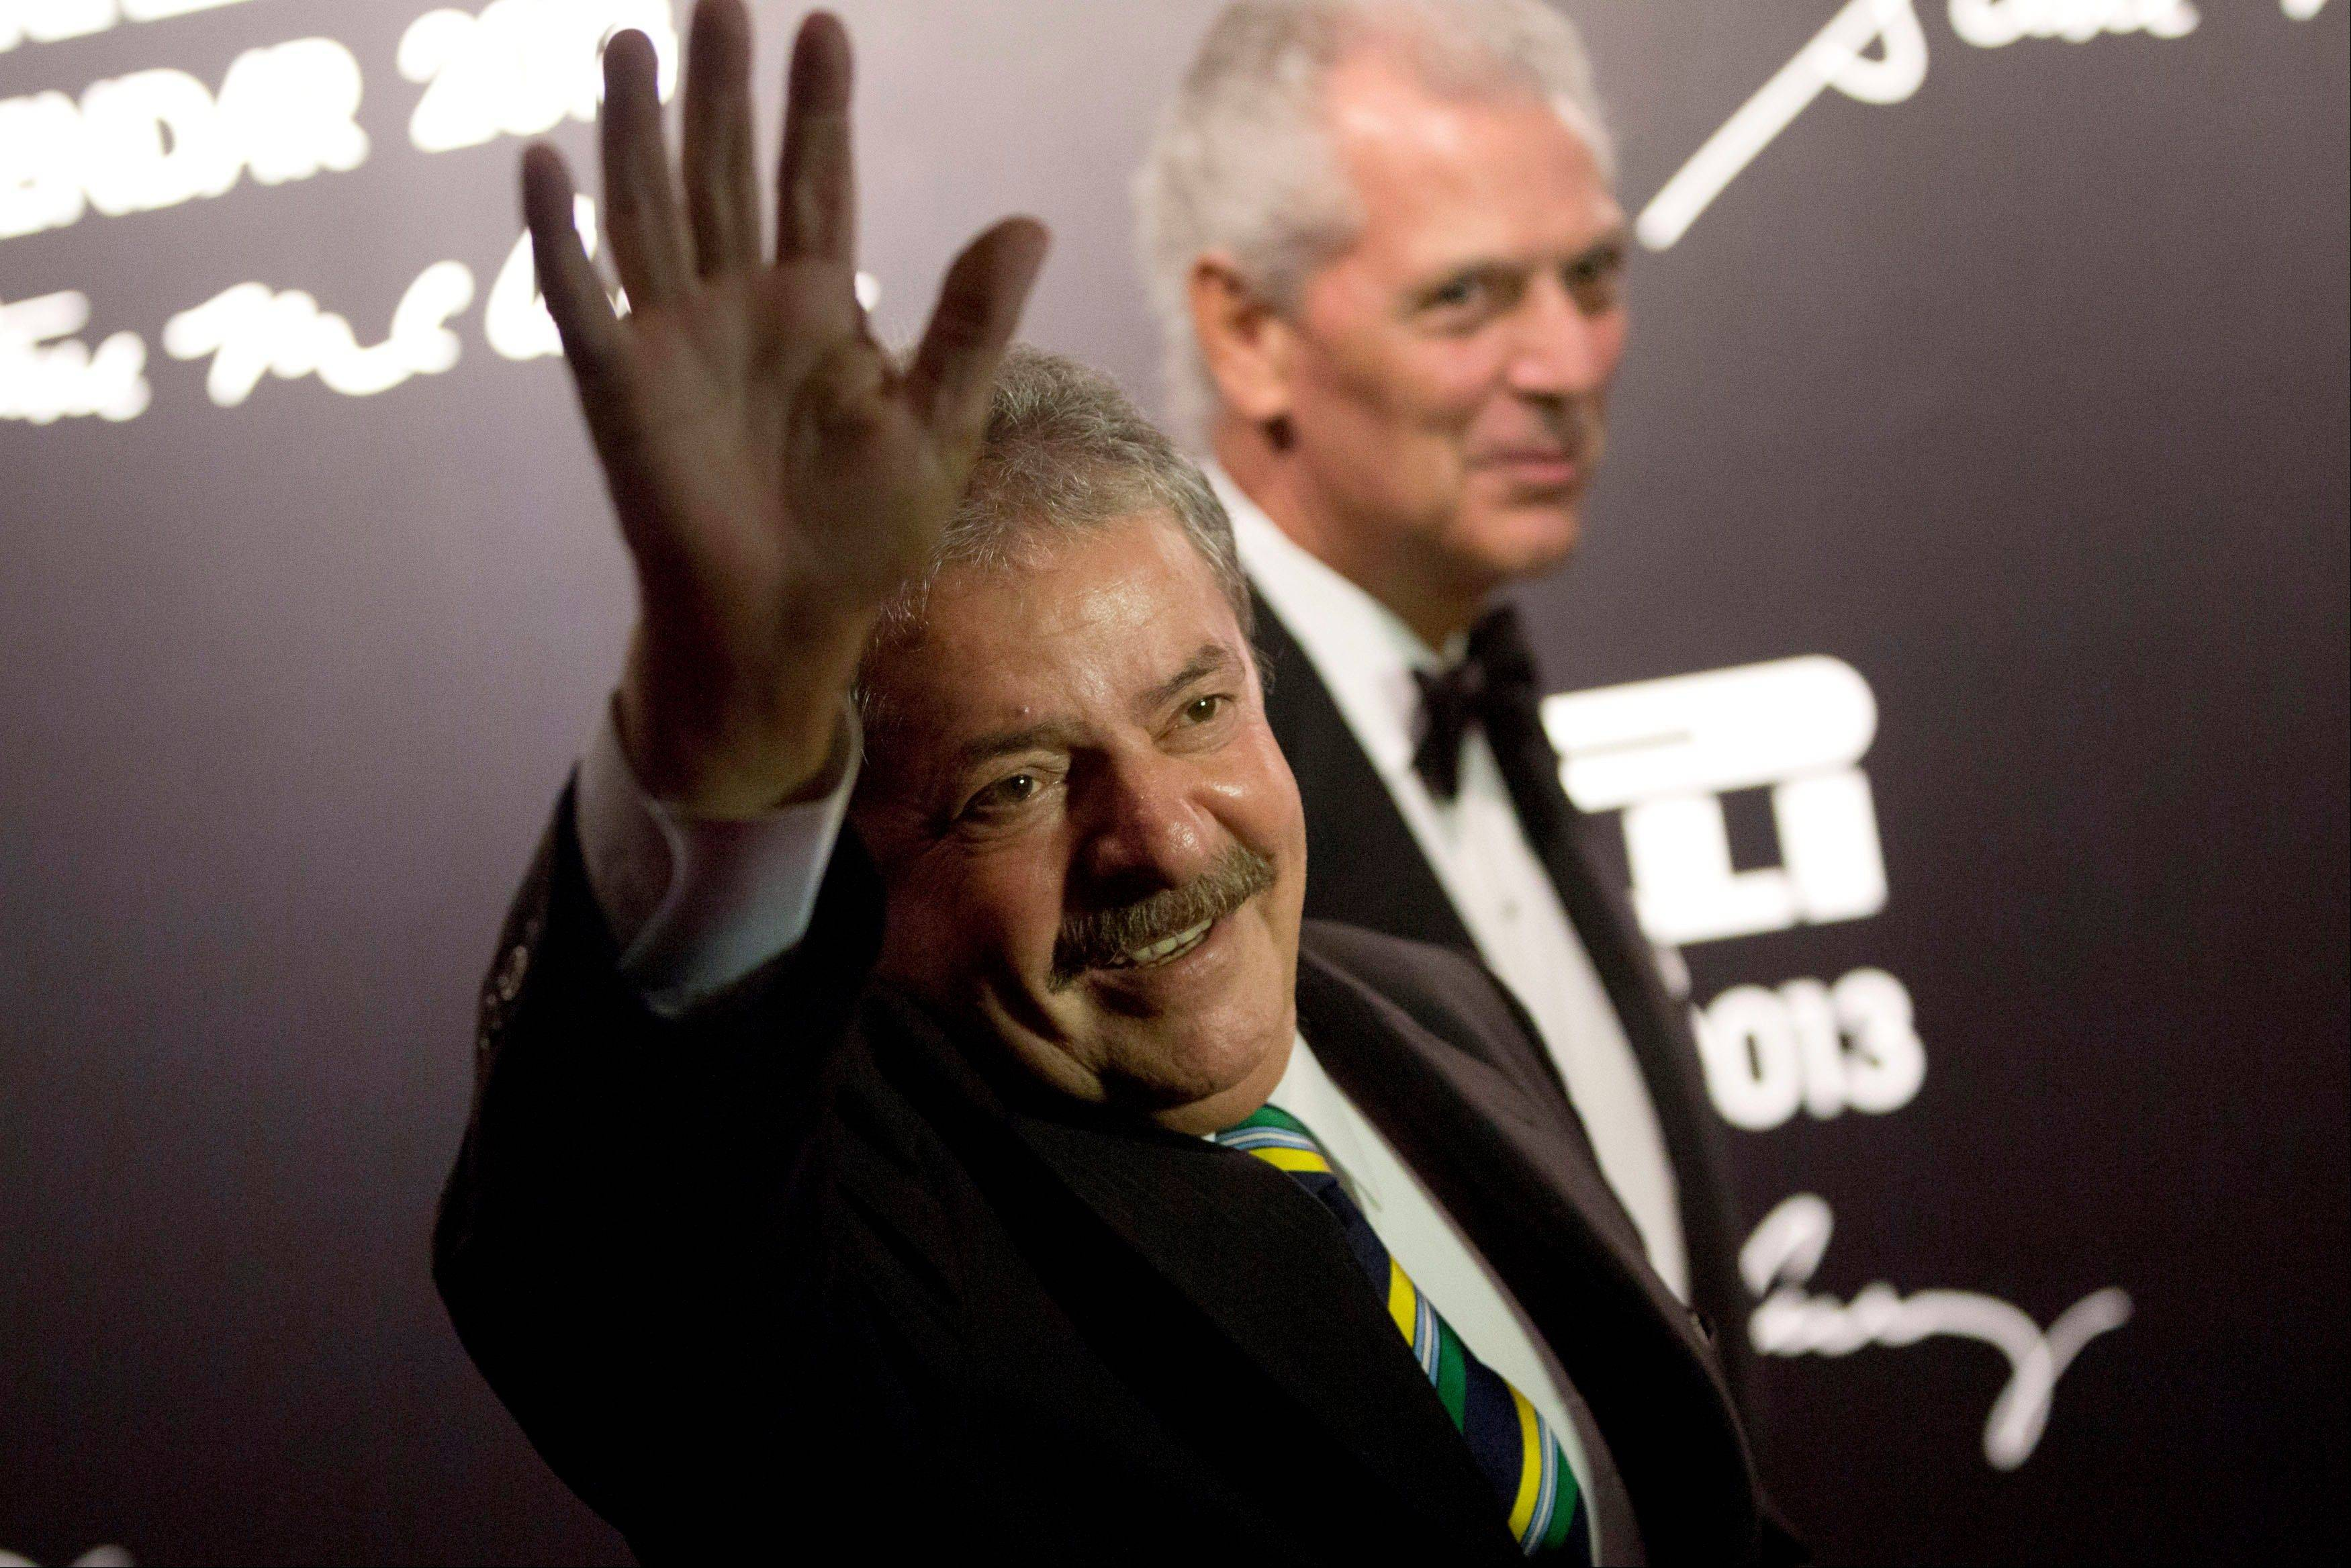 Brazil's former President Luiz Inacio Lula da Silva waves as he stands near Pirelli Chairman Marco Tronchetti Provera at the 2013 Pirelli Calendar red carpet event in Rio de Janeiro, Brazil.